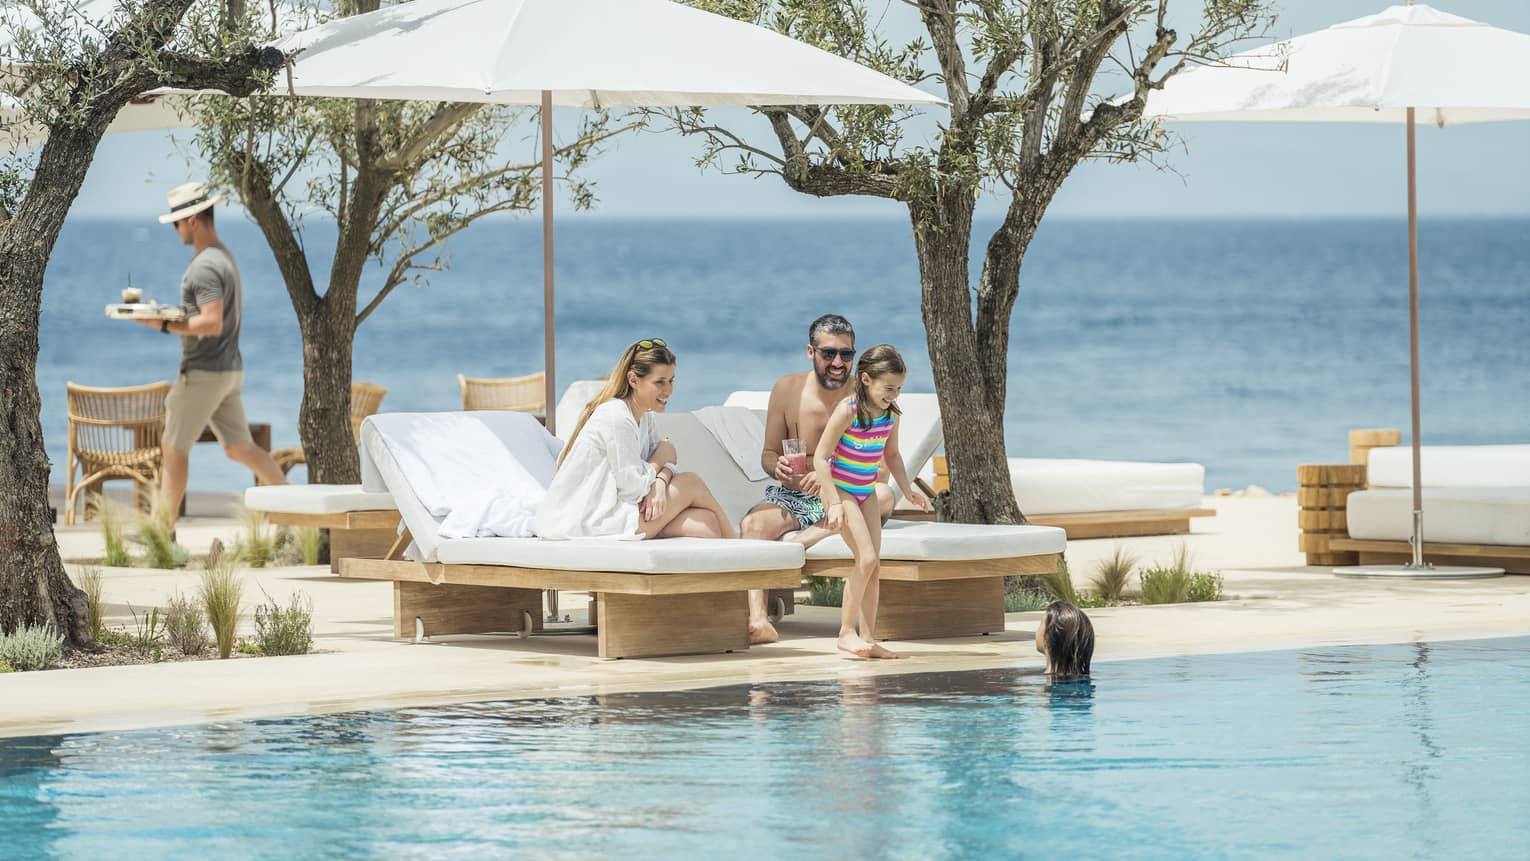 A man and woman sit on white lounge chairs while their two kids play in the pool overlooking the ocean